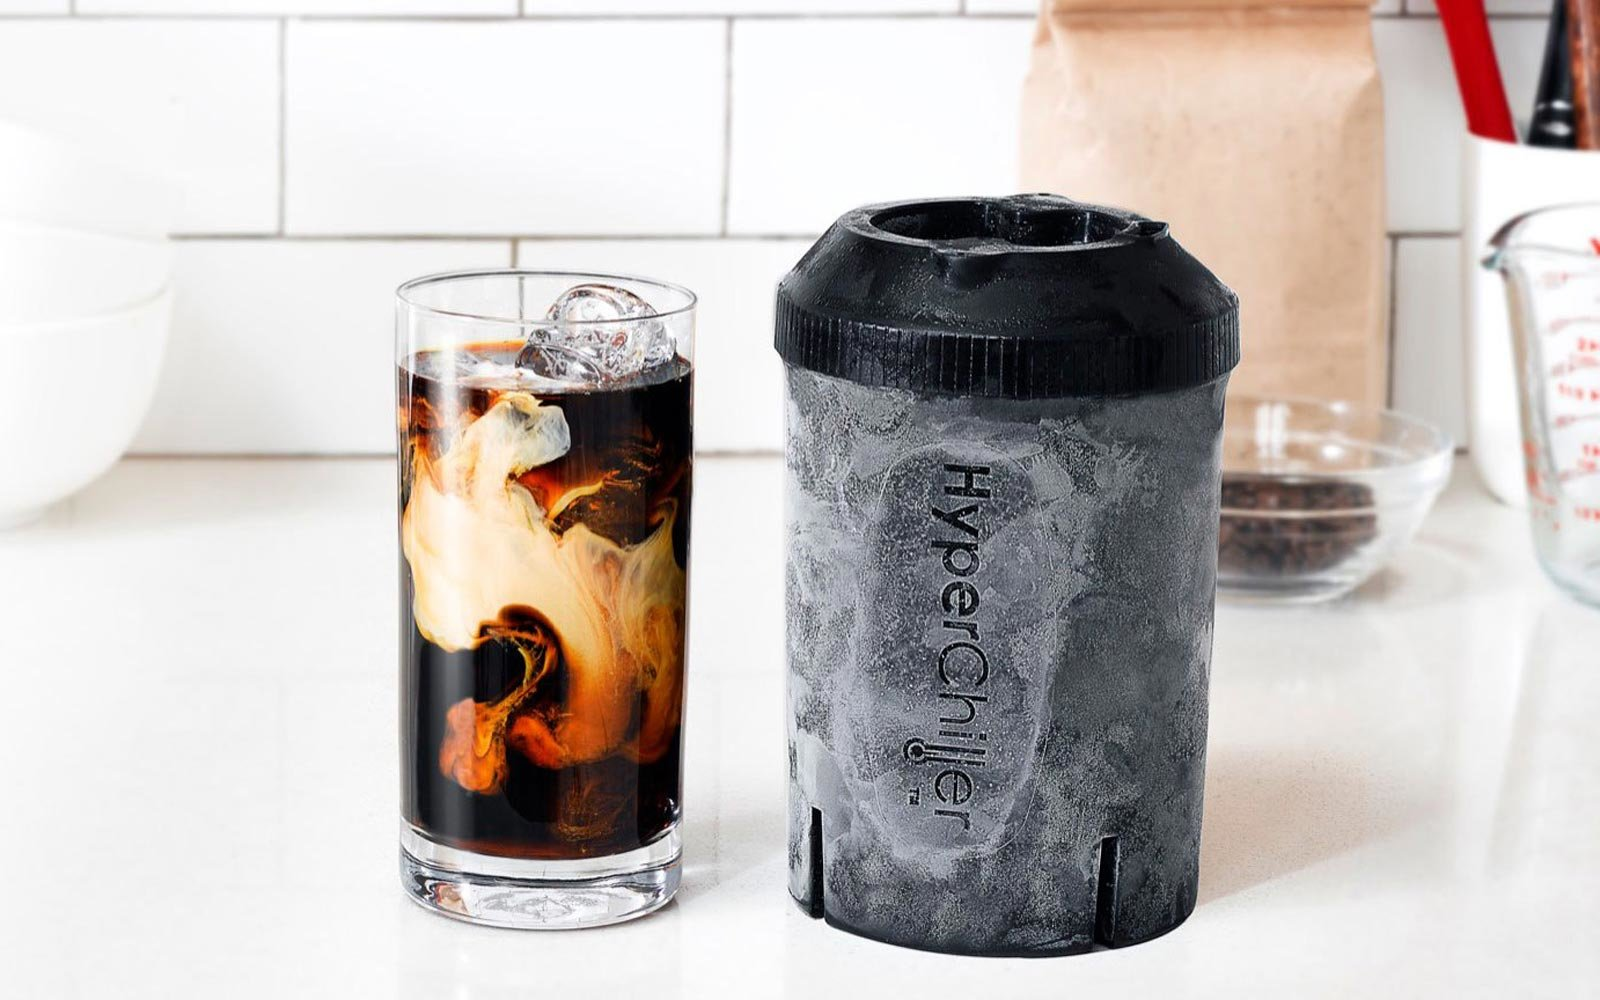 HyperChiller Drink Cooler